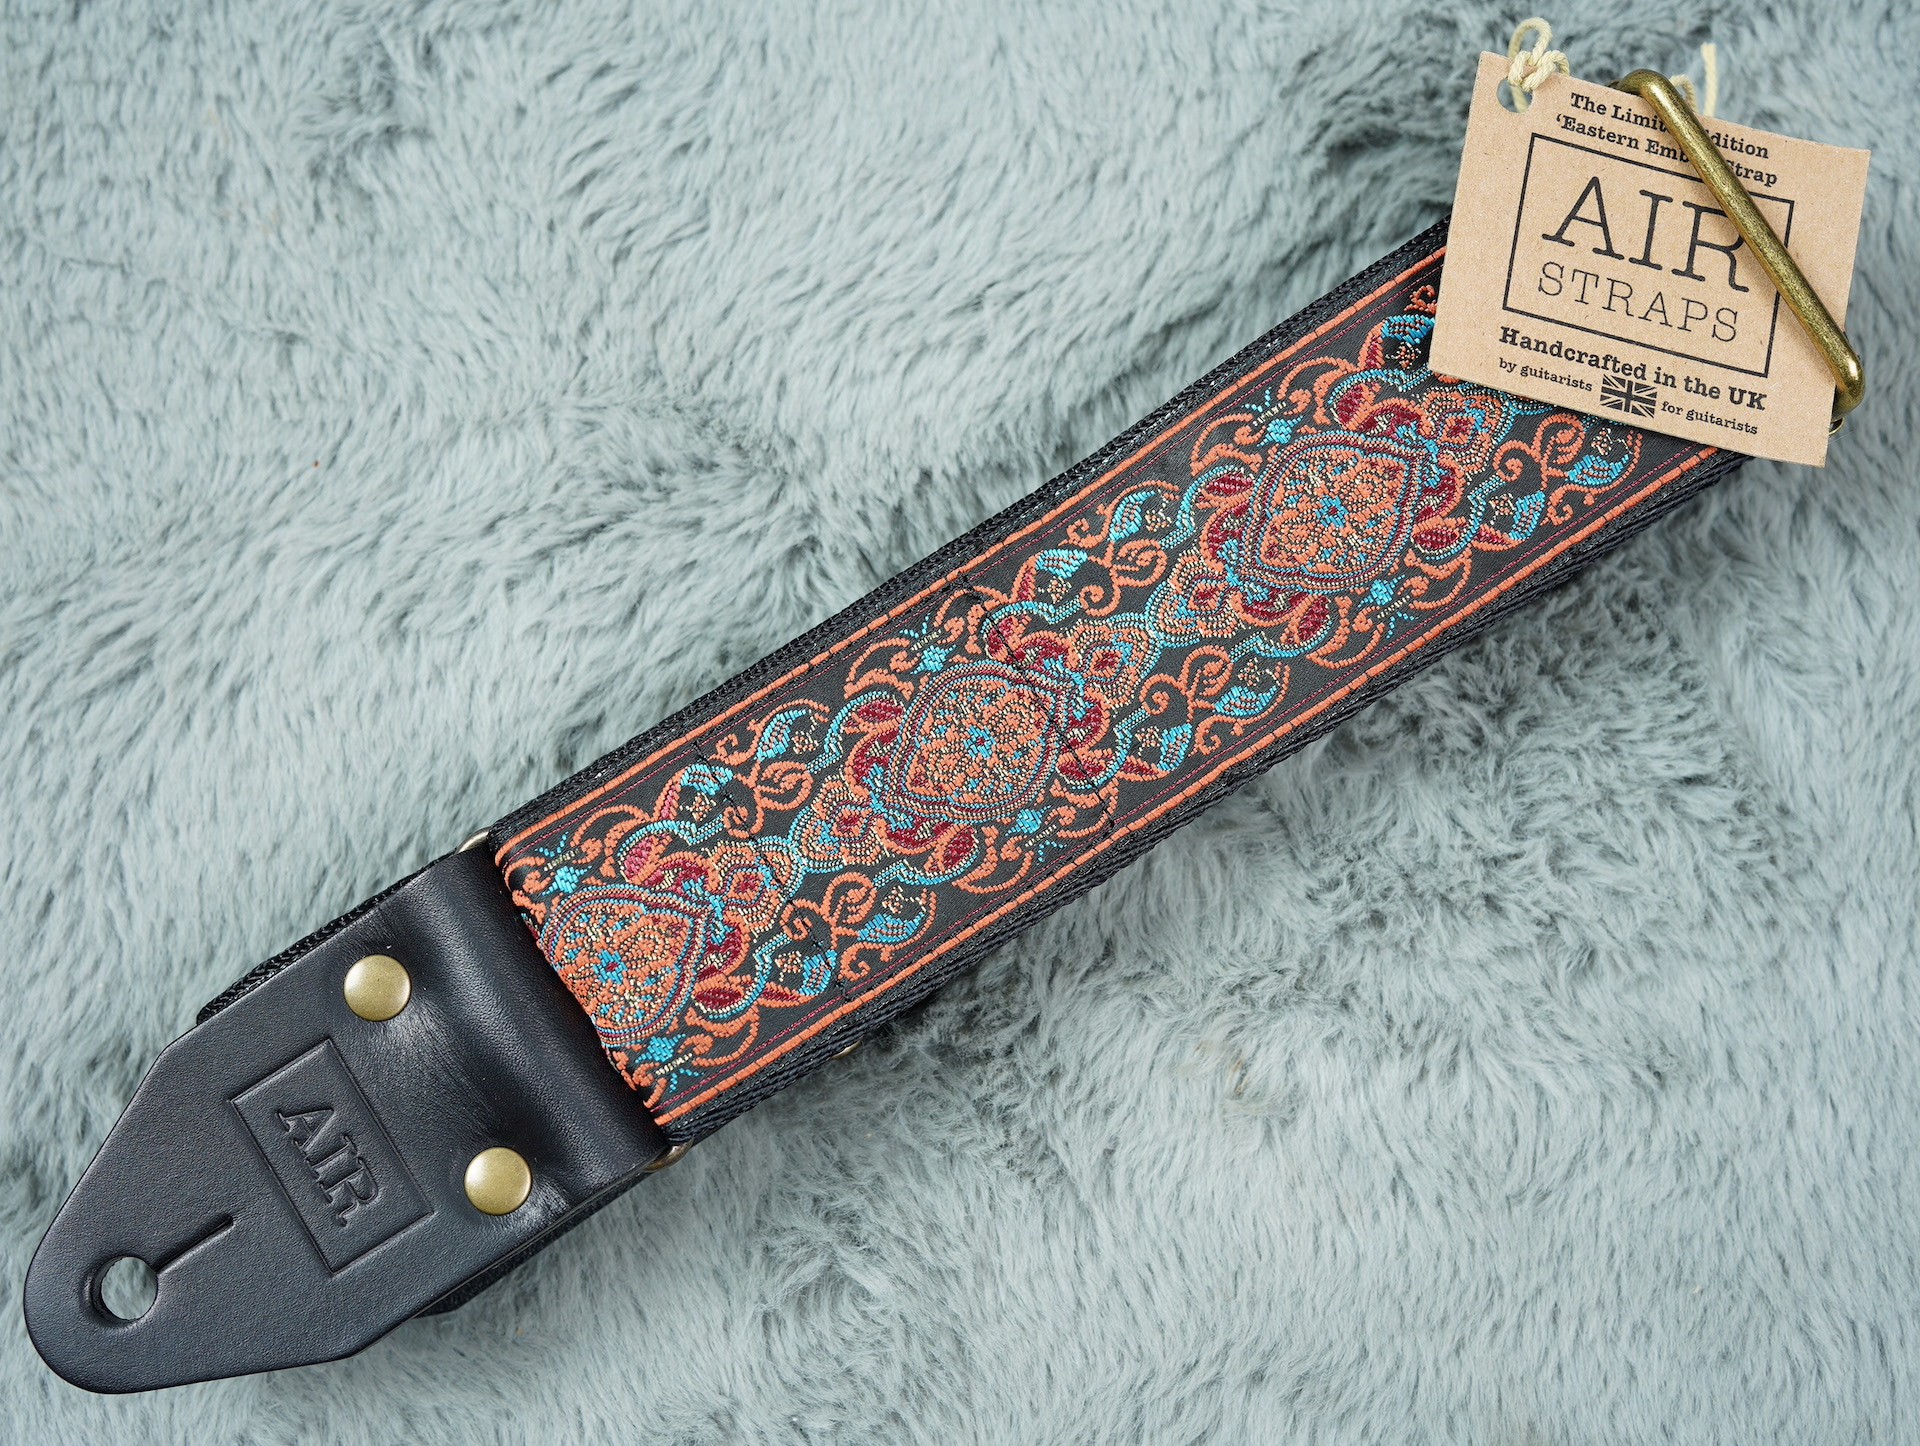 Air Straps Limited Edition 'Eastern Ember' Guitar Strap - Free Shipping!